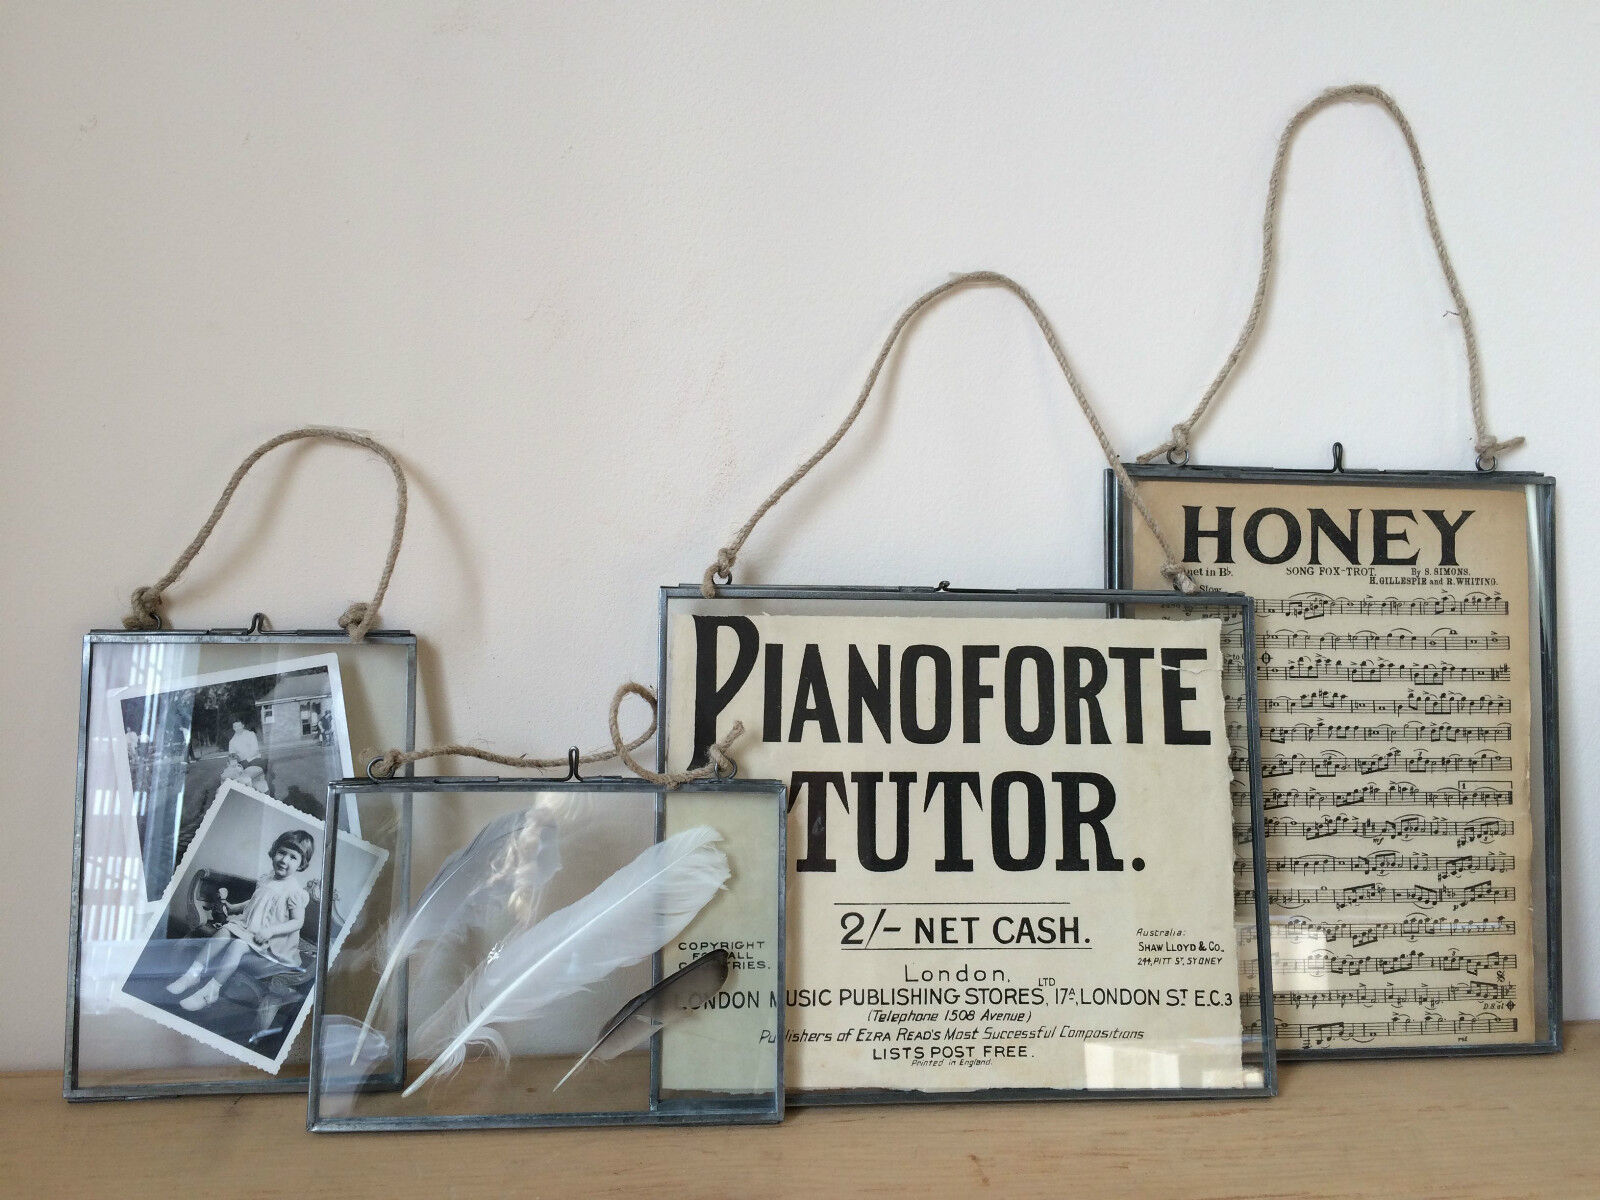 ANTIQUE SILVER METAL & Glass Hanging Photo Frame Vintage Style 6x4 ...